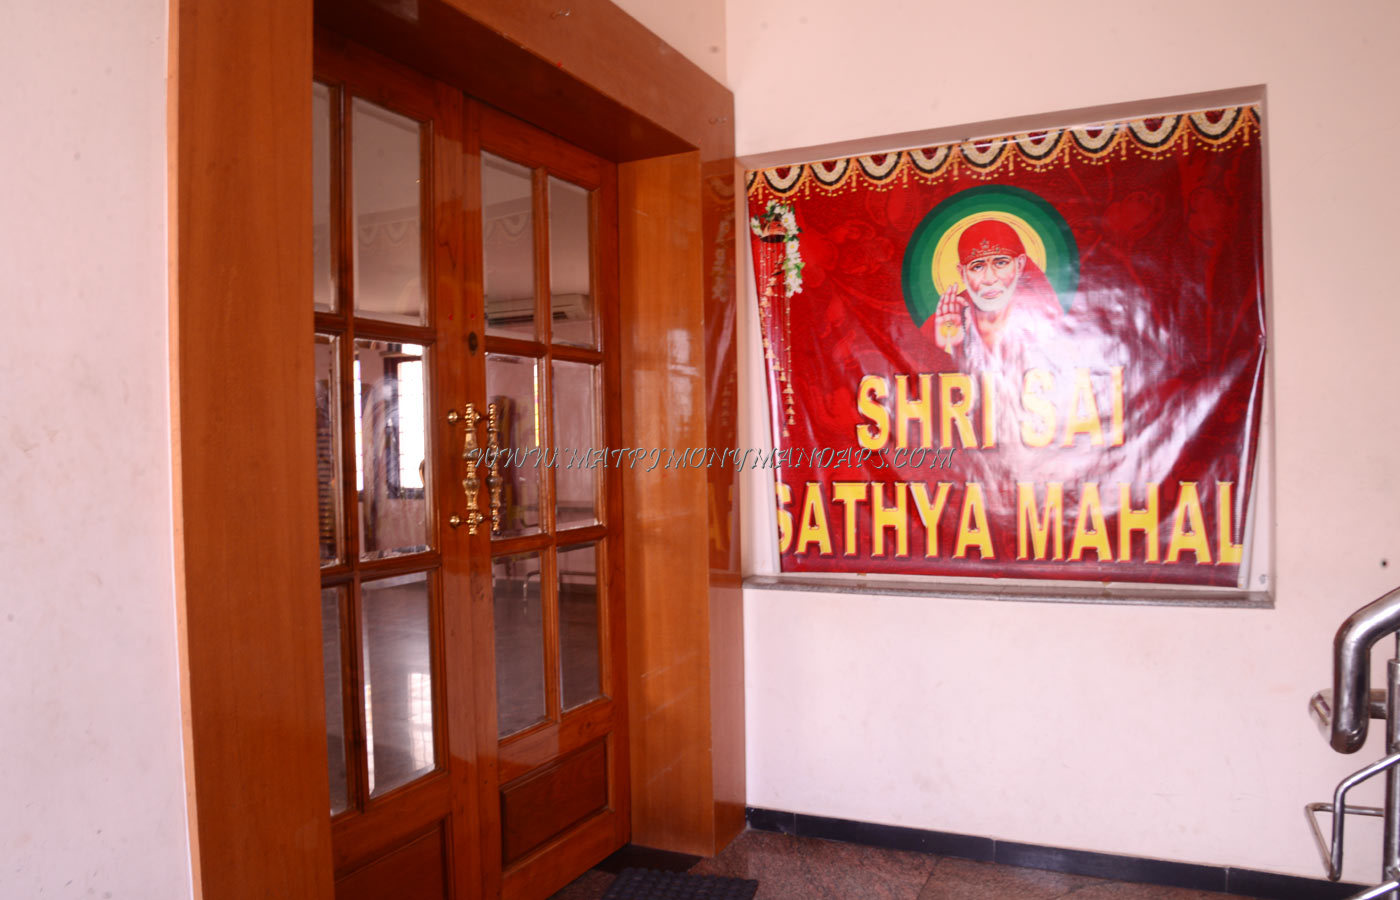 Find the availability of the Shri Sai Sathya Mahal (A/C) in Ambattur, Chennai and avail special offers